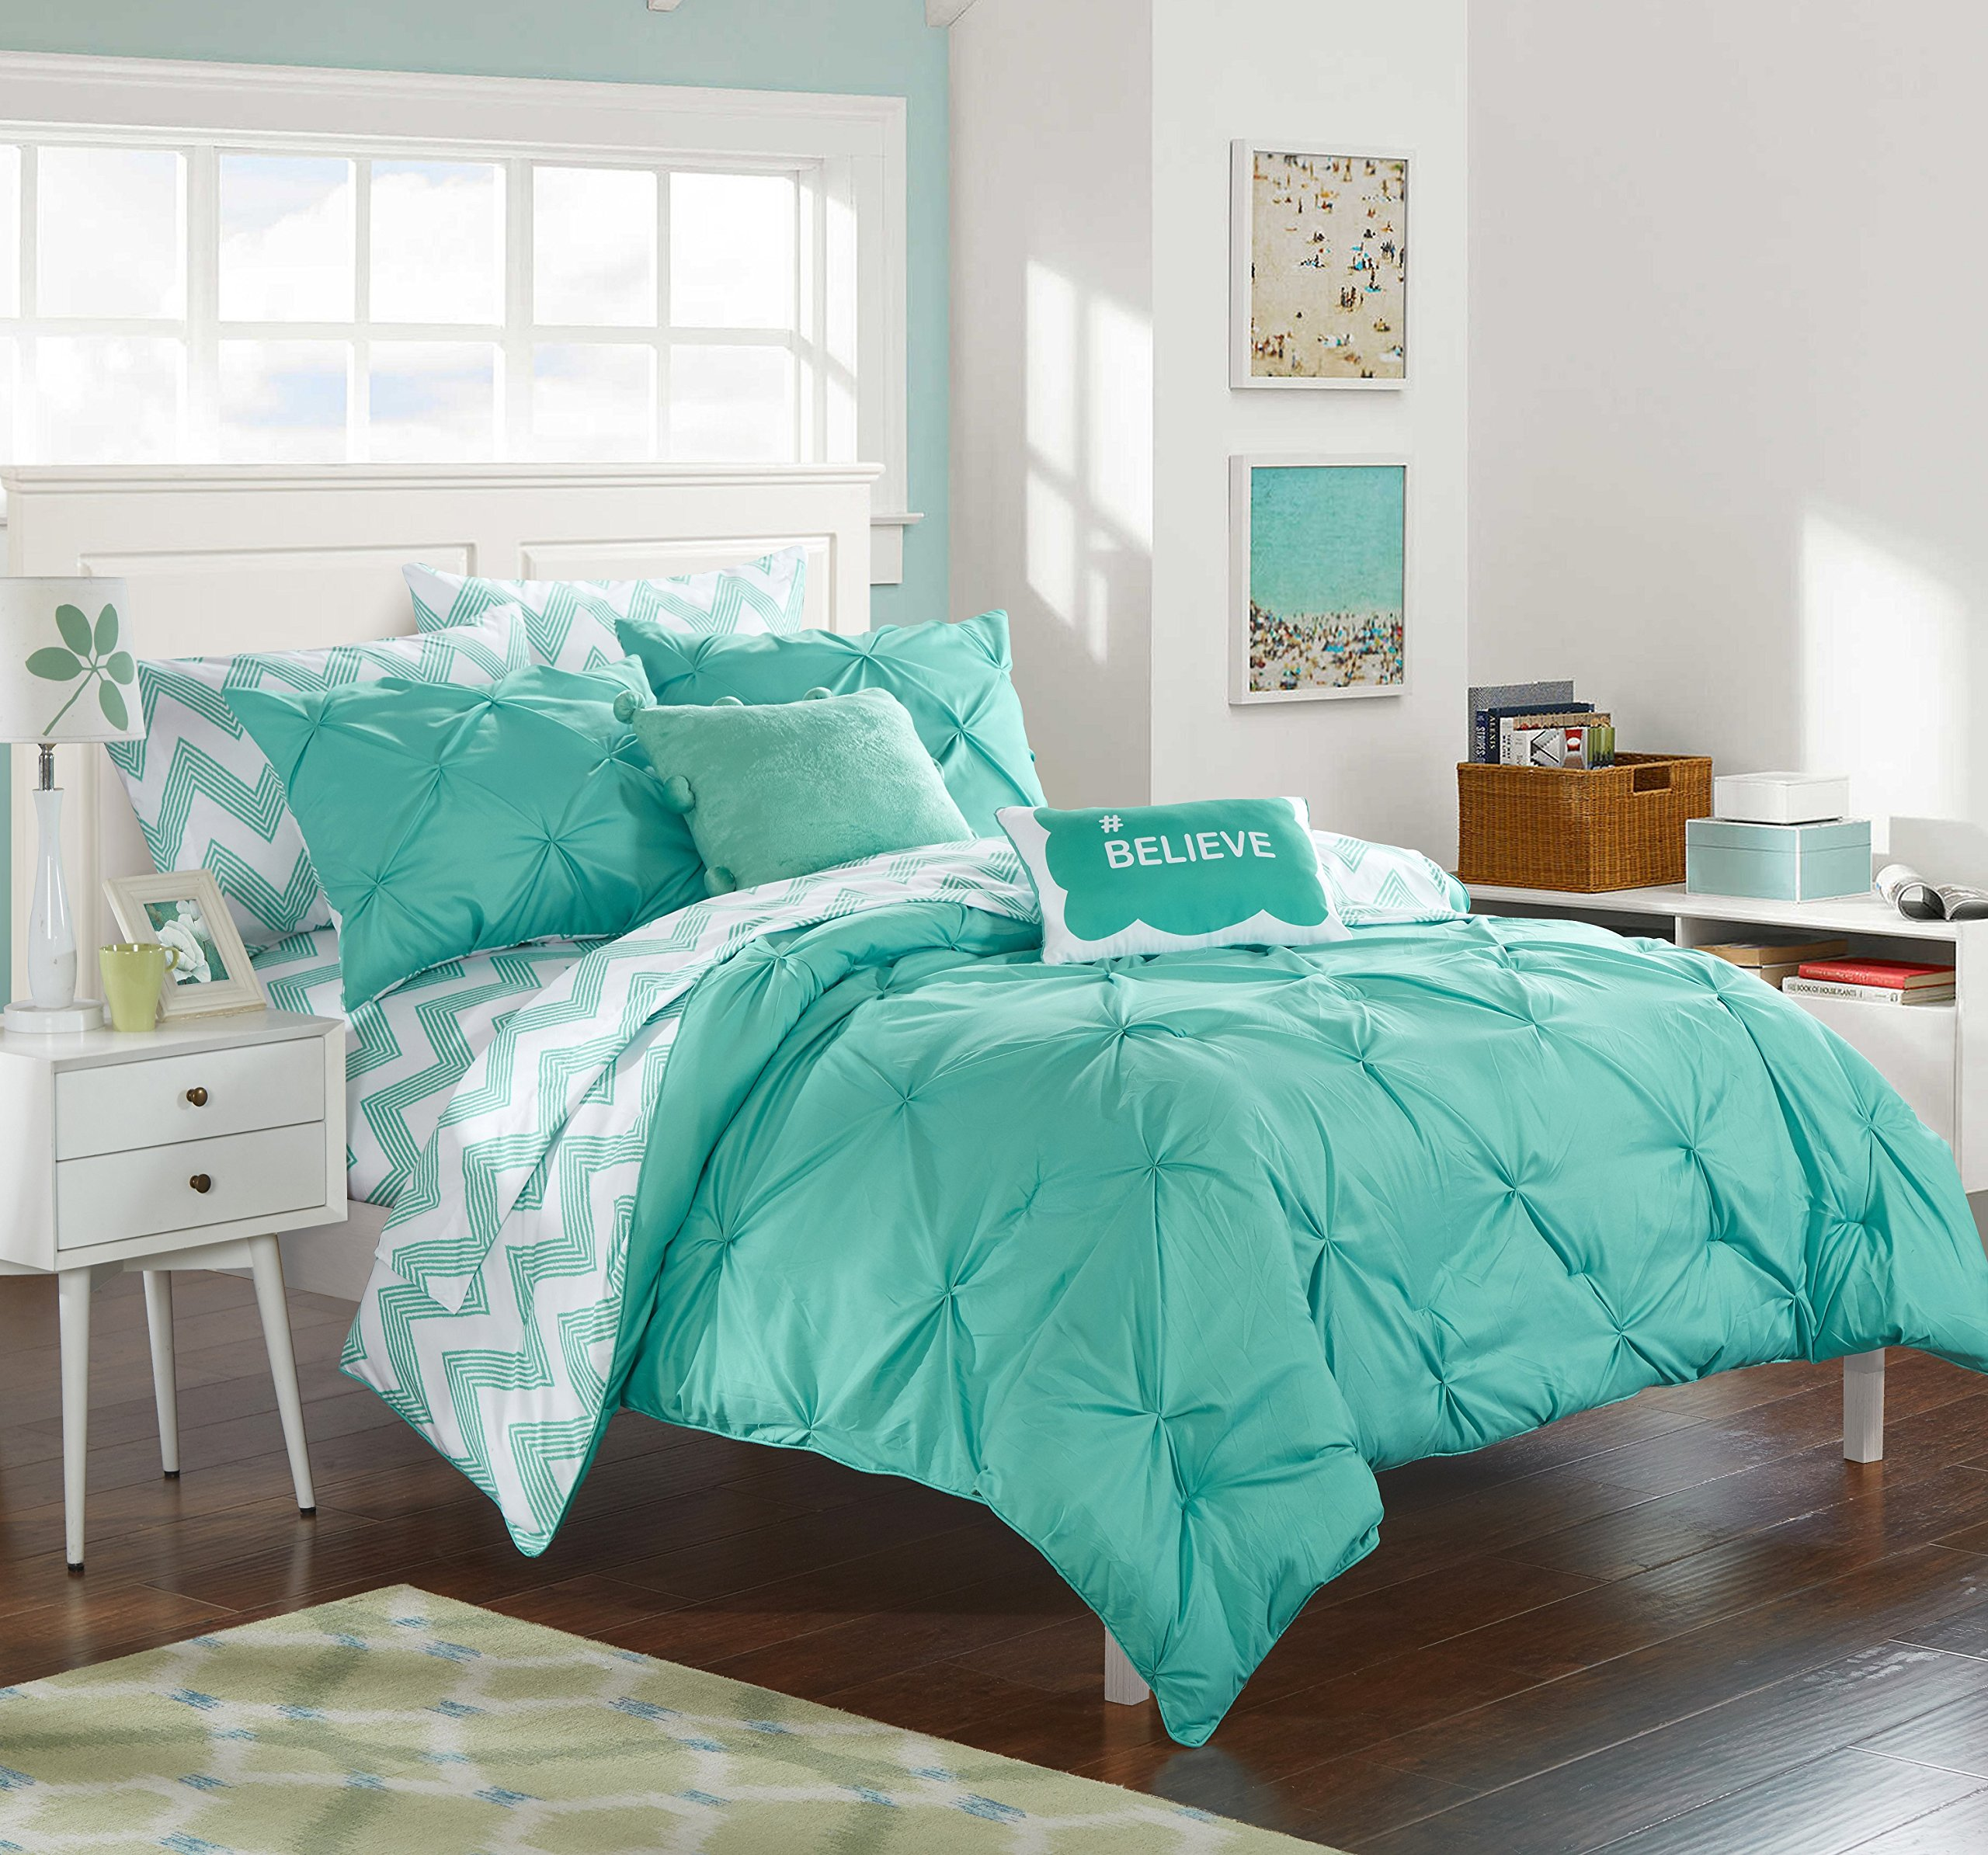 Chic Home 9 Piece Louisville Pinch Pleated and Ruffled Chevron Print Reversible Bed In a Bag Comforter Set Sheets, Full, Aqua by Chic Home